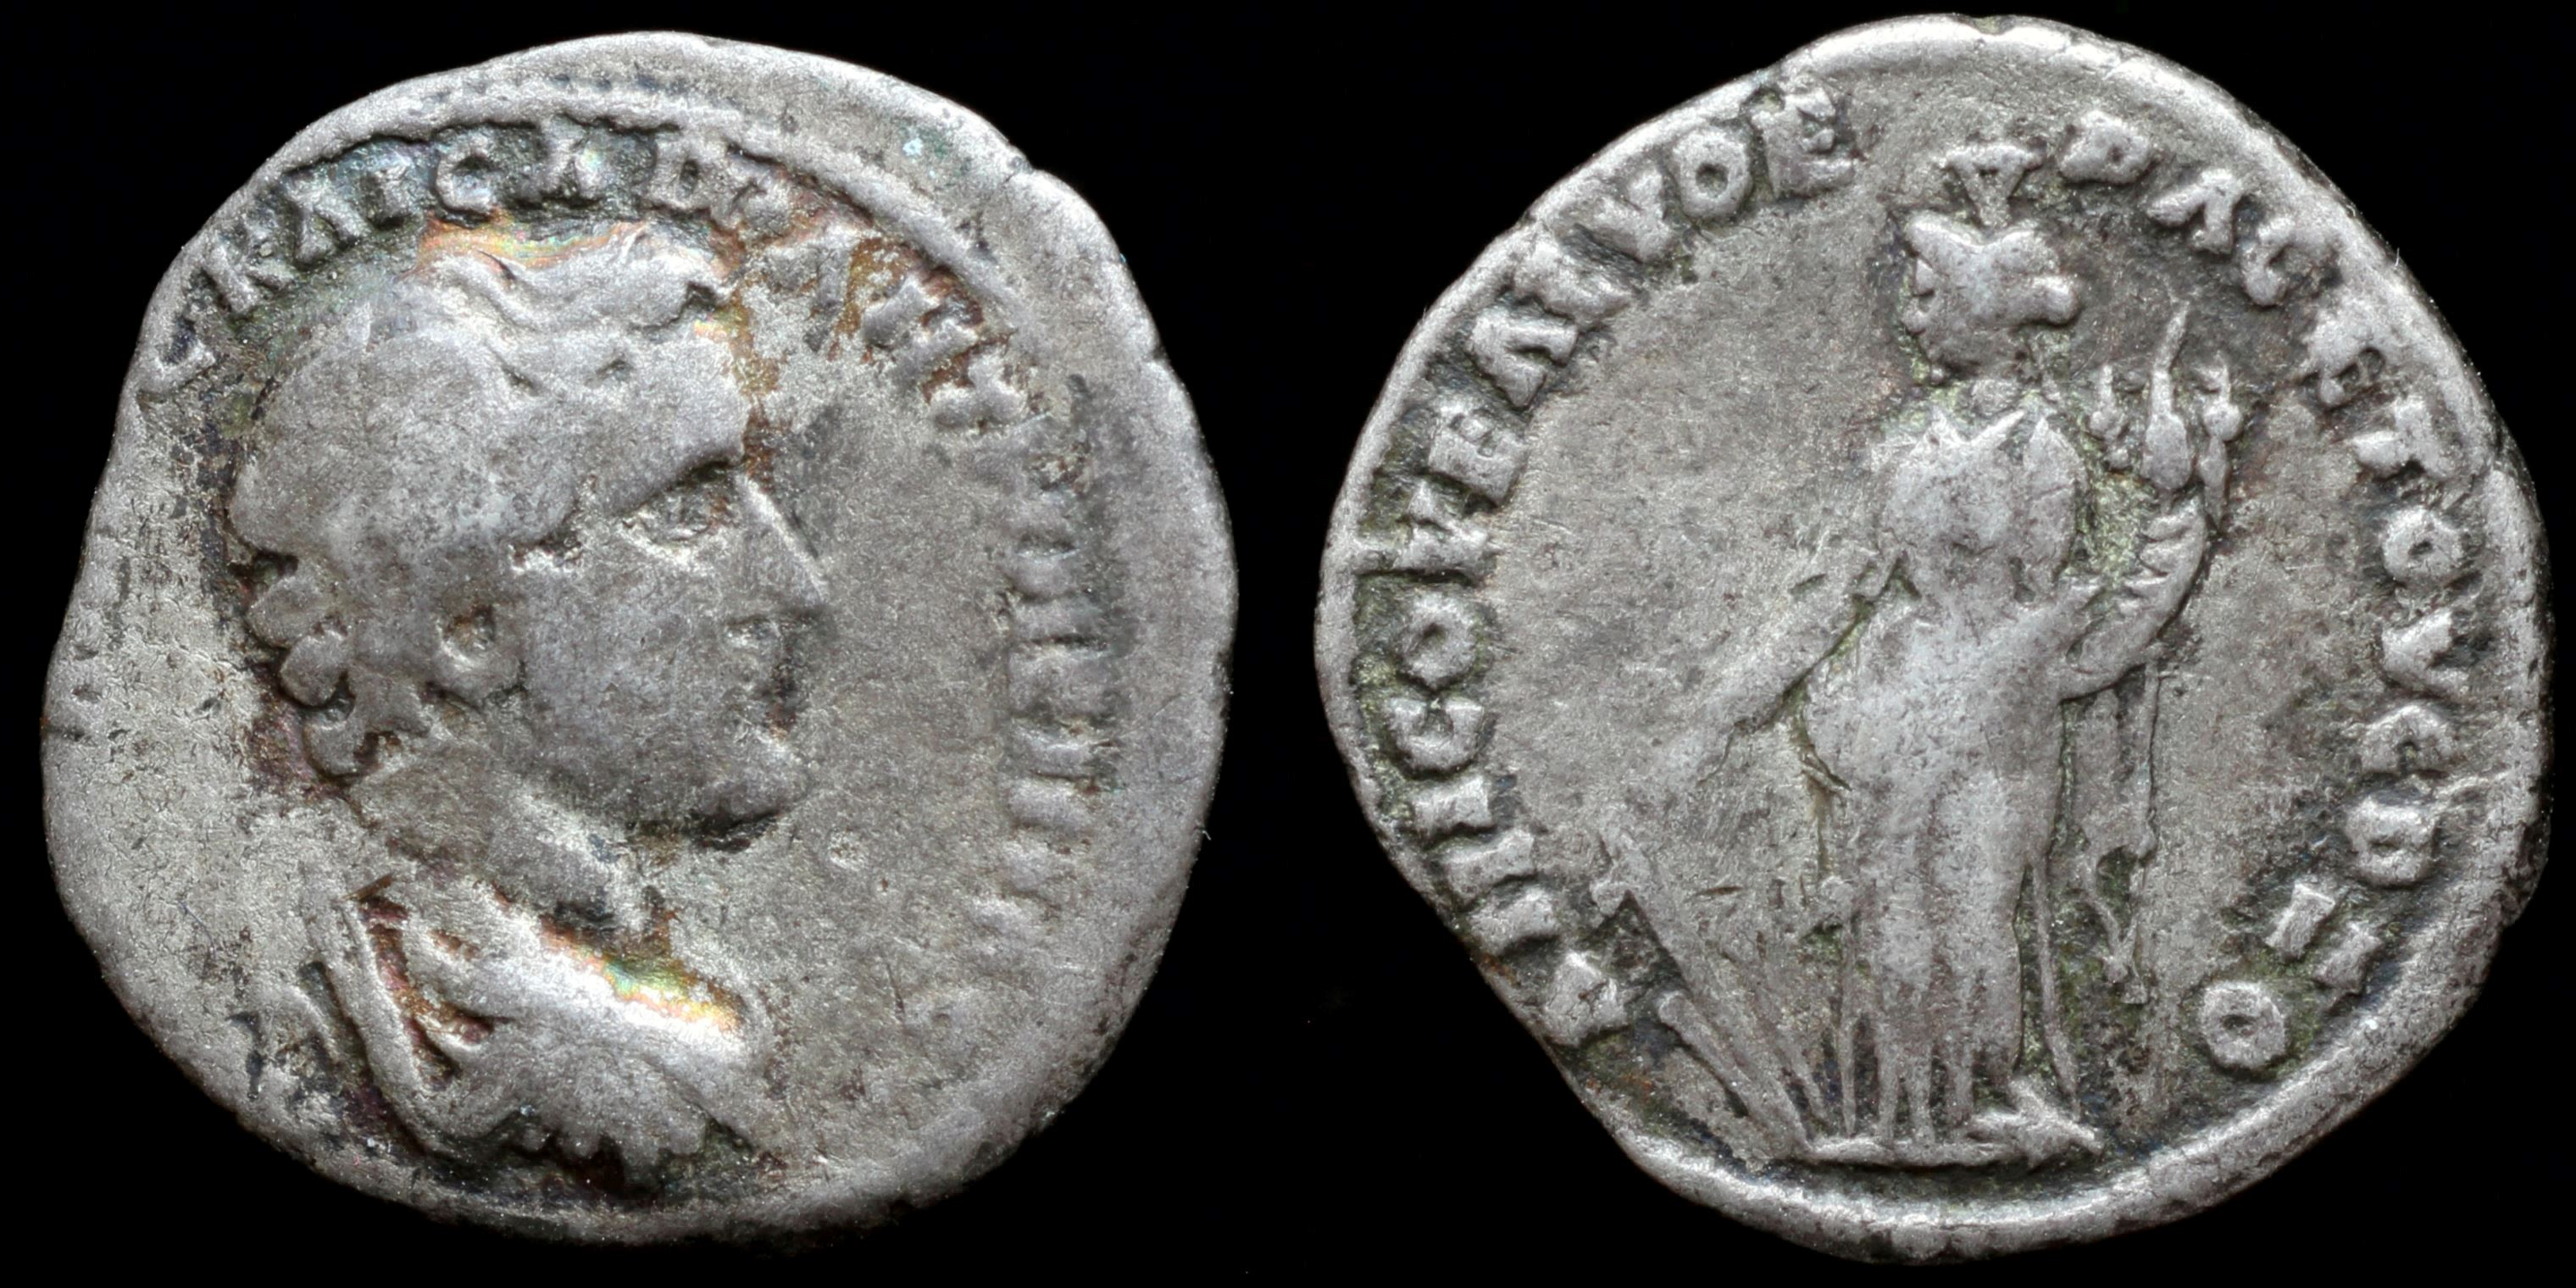 /Files/Images/Coinsite/CoinDB/Antoninus_Pius_Amisos.jpg